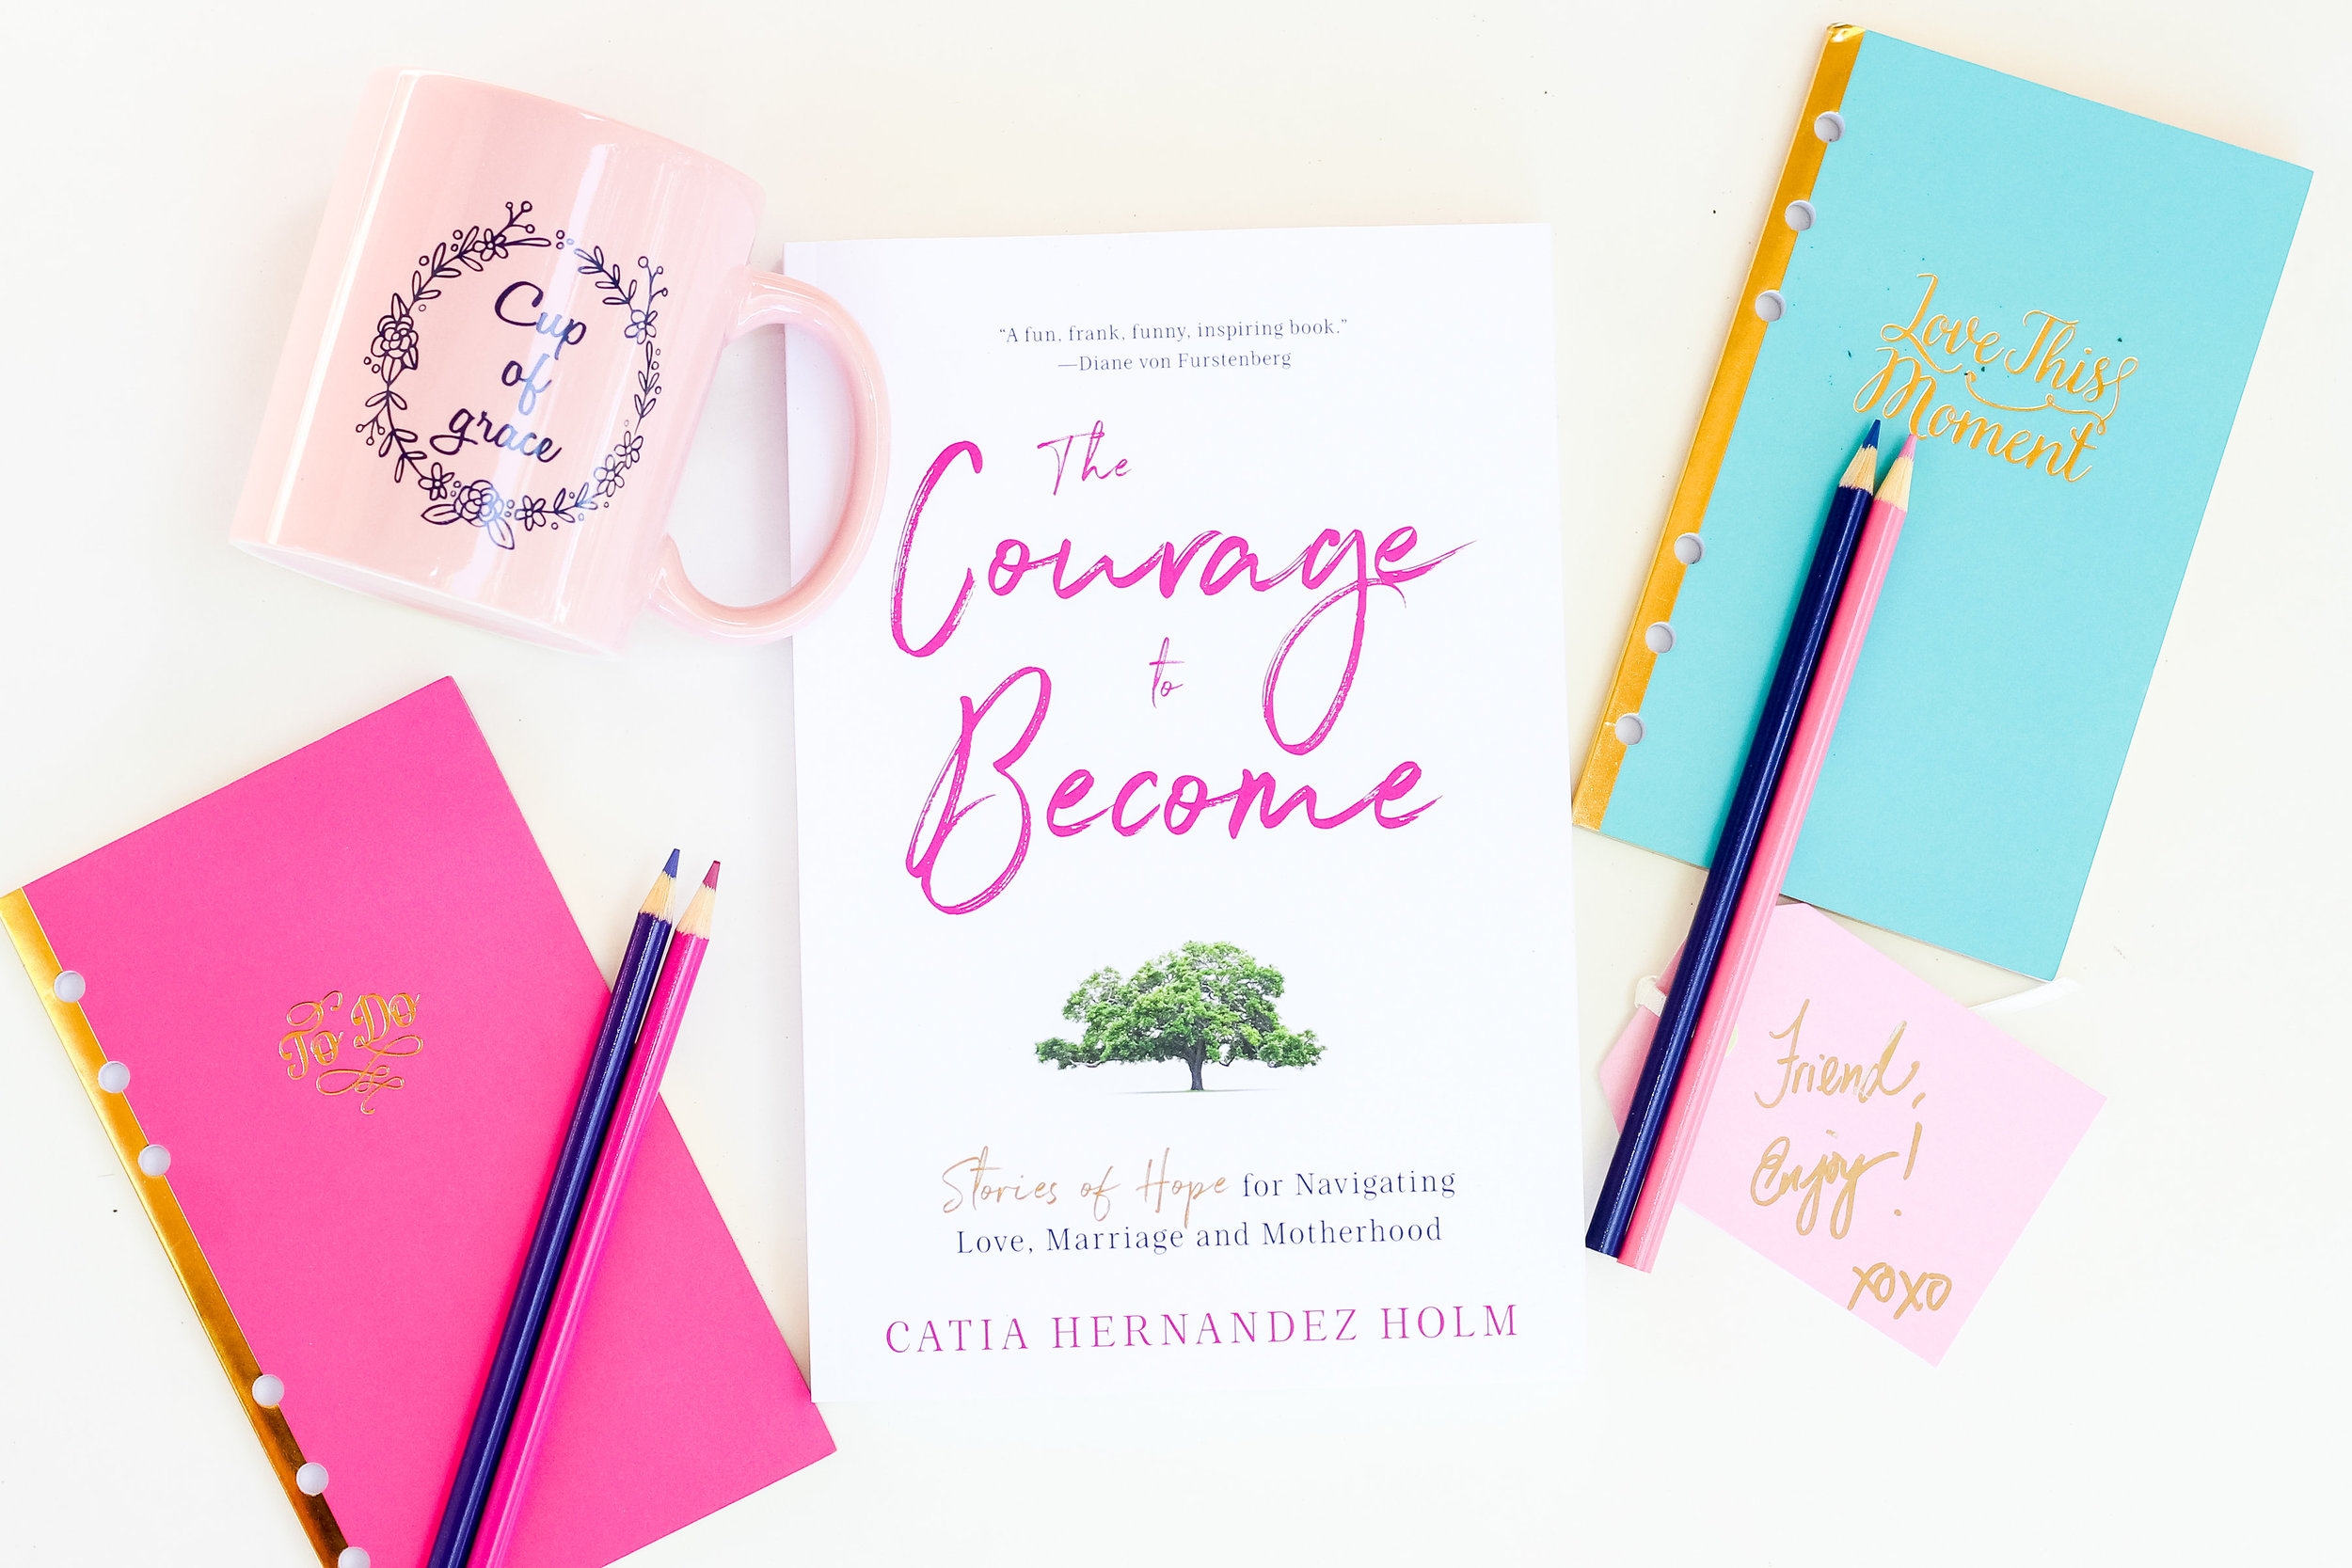 The Courage to Become Book -